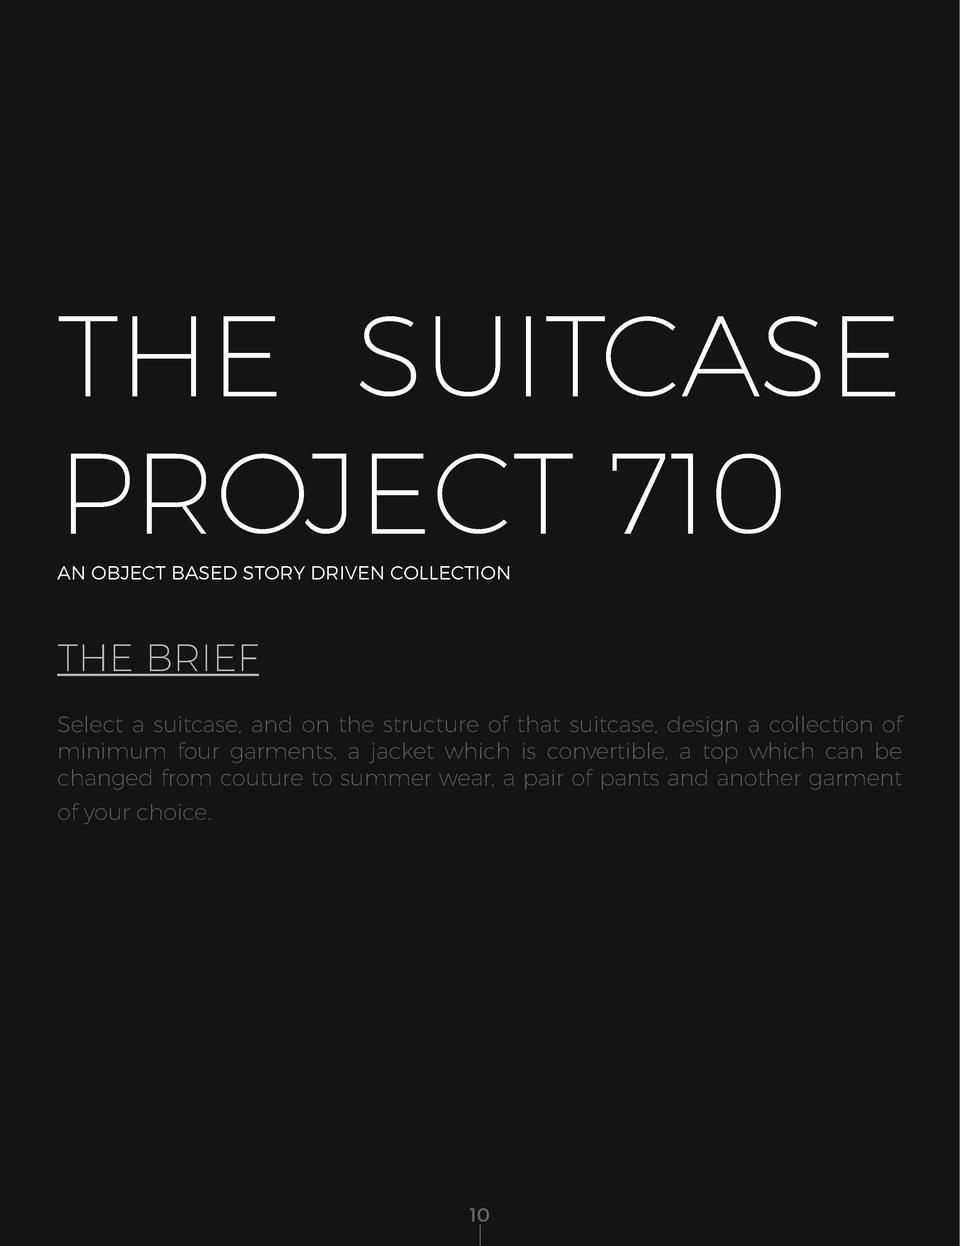 THE SUITCASE PROJECT 710 AN OBJECT BASED STORY DRIVEN COLLECTION  THE BRIEF Select a suitcase, and on the structure of tha...